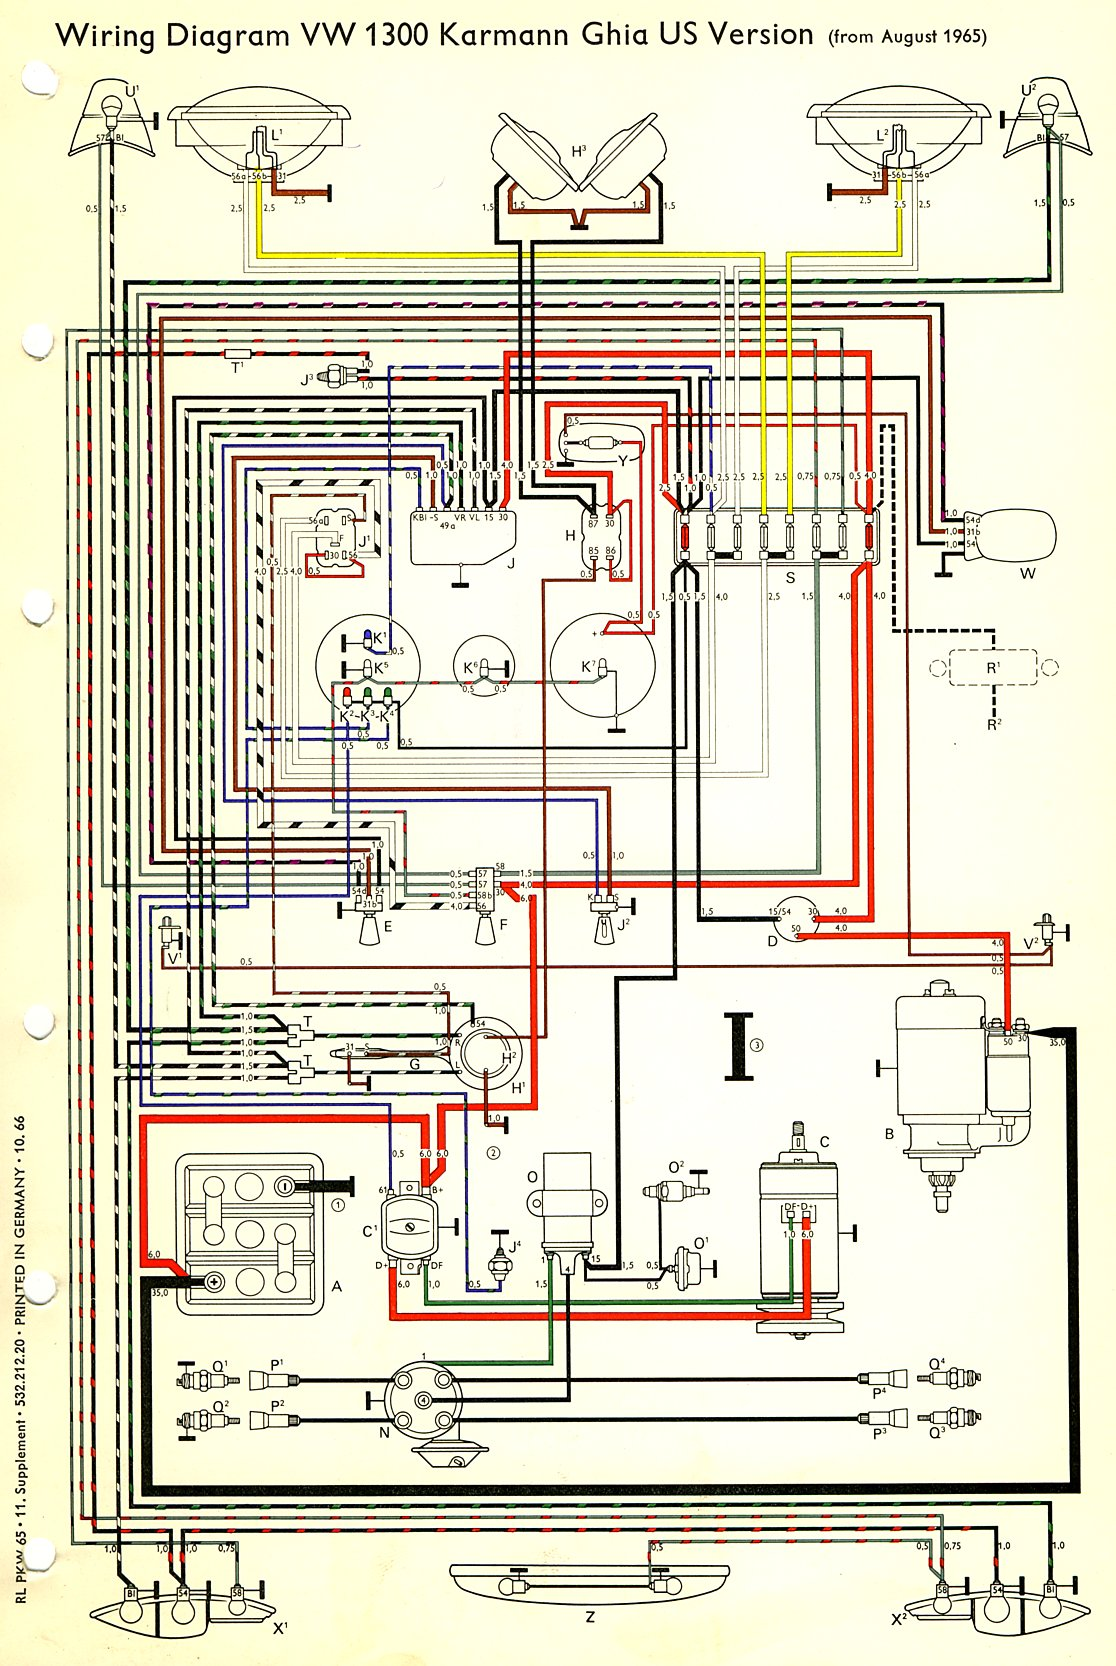 com karmann ghia wiring diagrams 1966 usa